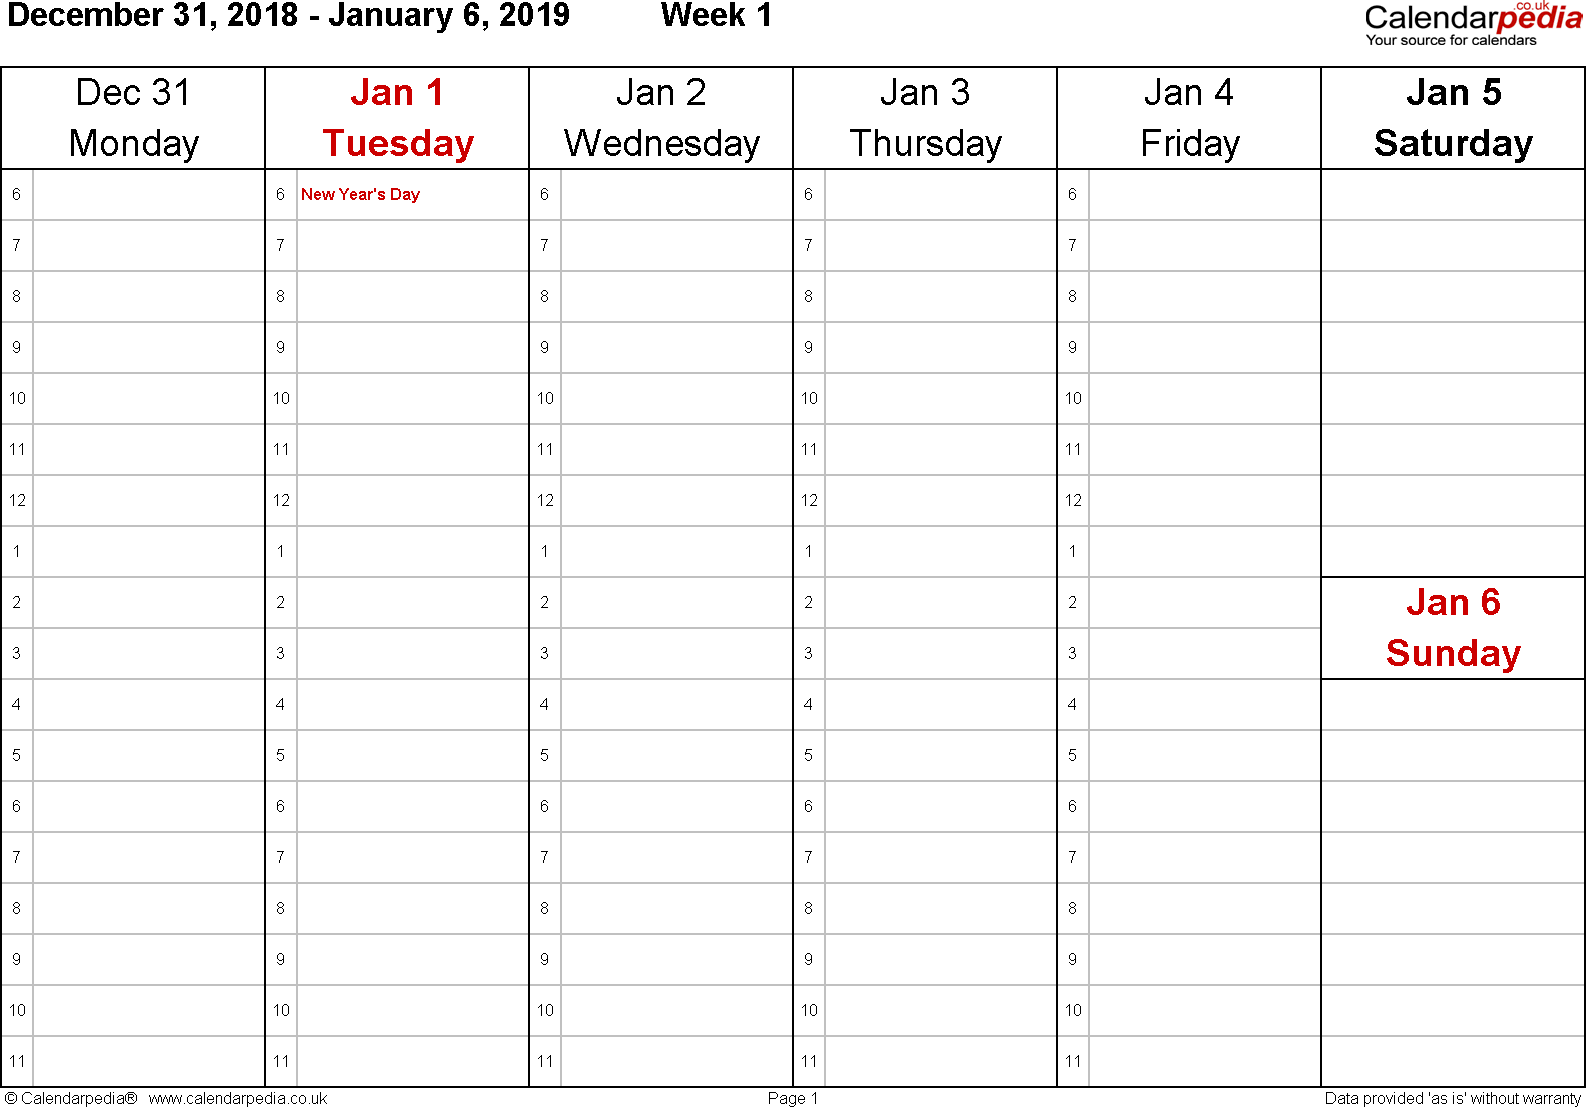 Excel template 4: Weekly calendar 2019, landscape orientation, 53 pages (1 calendar week on 1 page), time management layout (1 hour steps), Saturday & Sunday share one column